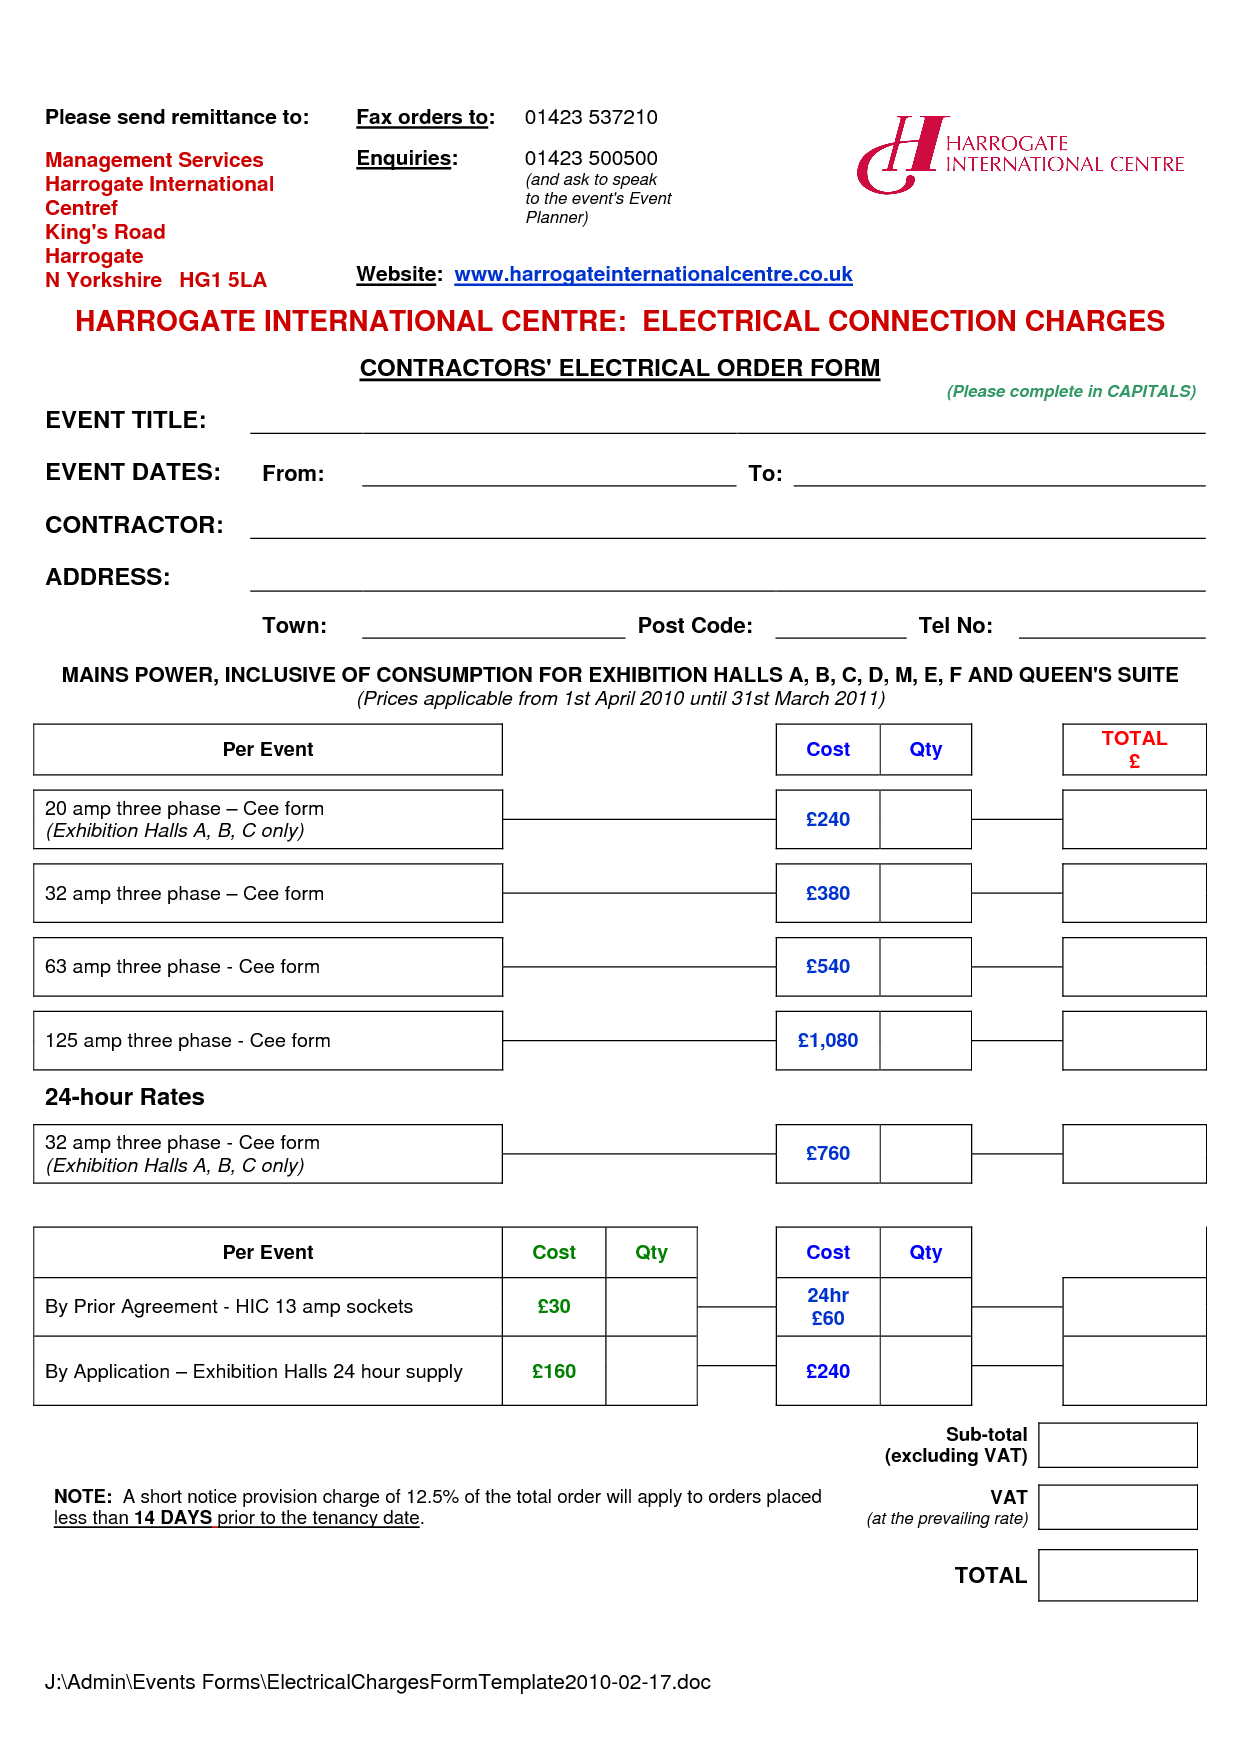 Consultant Invoice Template Free and Sample Invoice Electrical Work Free Invoice Template